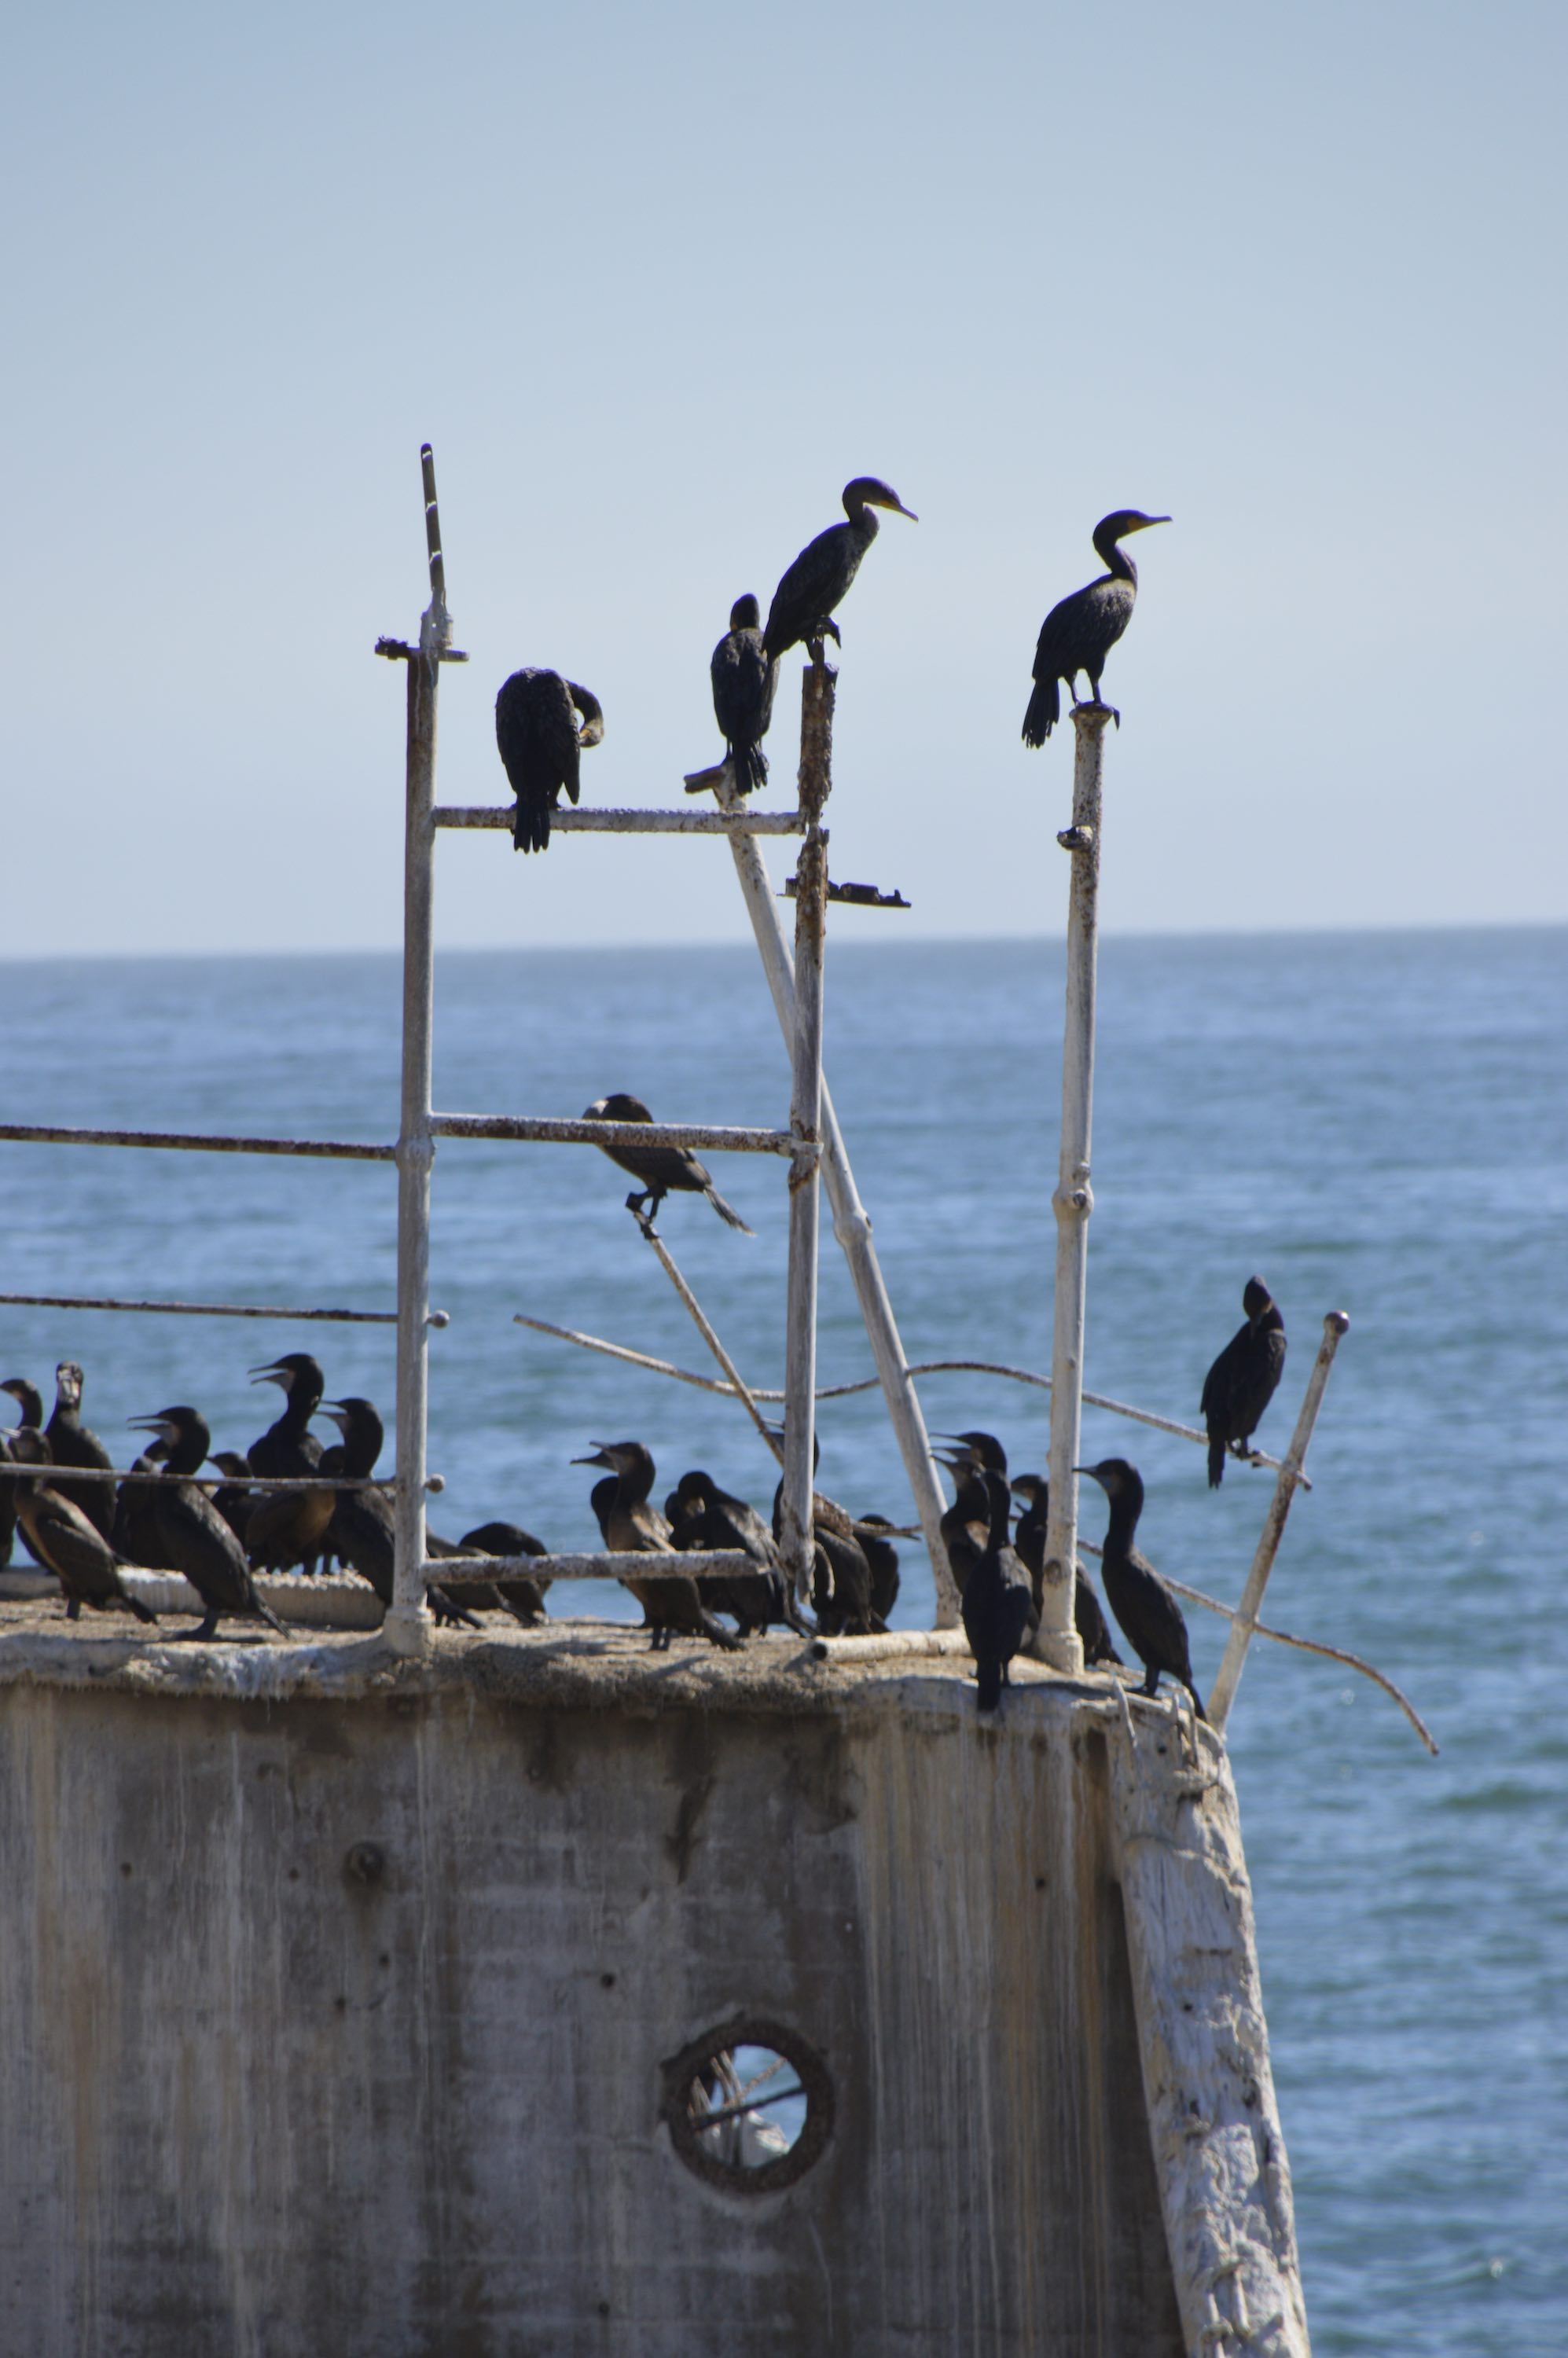 Cormorants dry off and socialize before diving again for their meals.